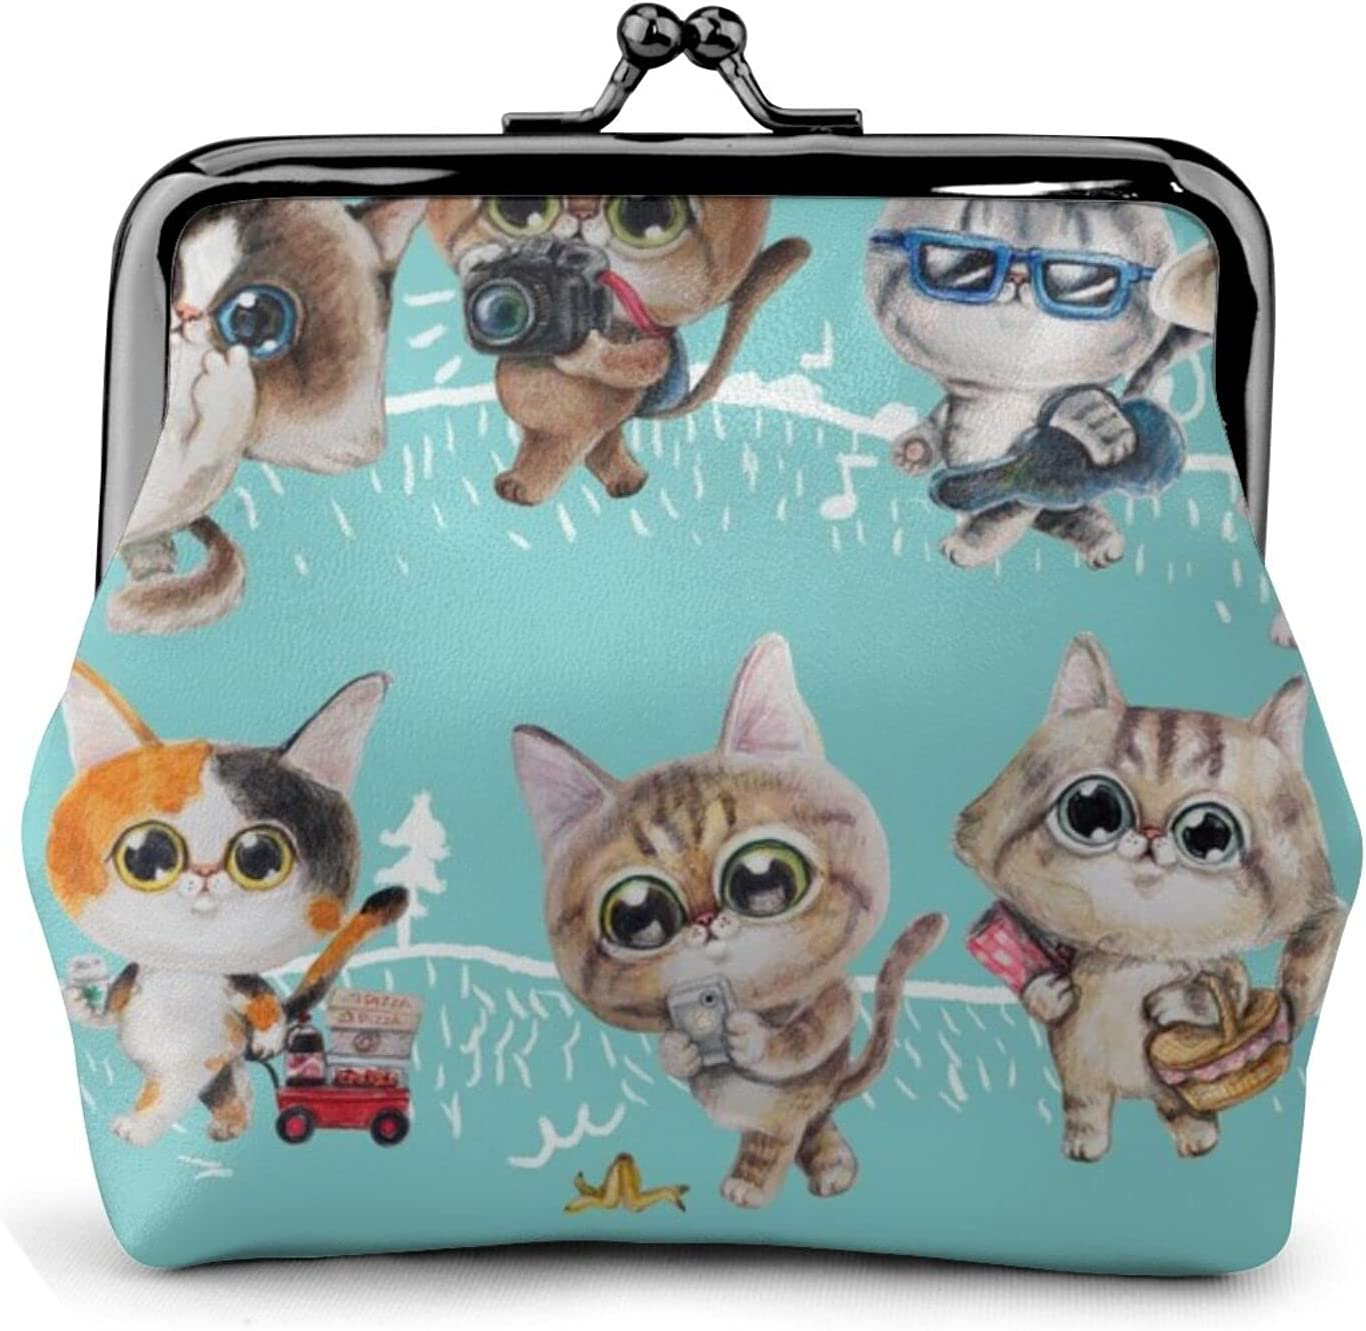 Cats On The 1429 Women'S Wallet Buckle Coin Purses Pouch Kiss-lock Change Travel Makeup Wallets, Black, One Size